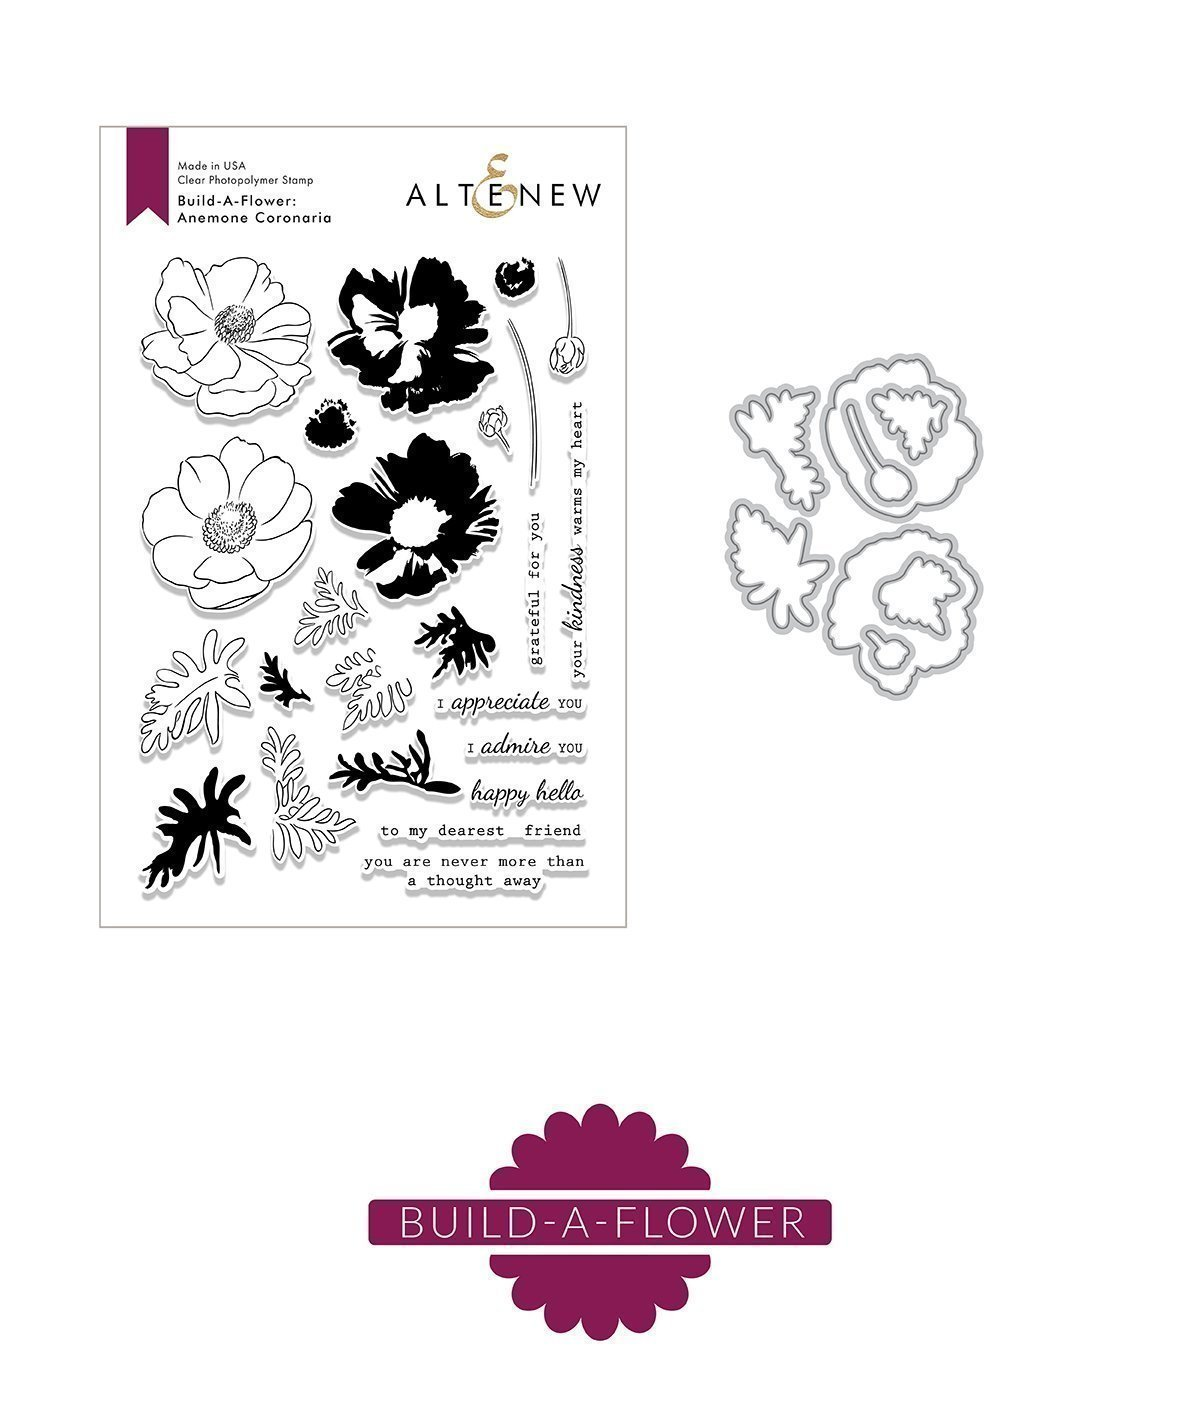 *NEW* - Altenew - Build-A-Flower: Anemone Coronaria